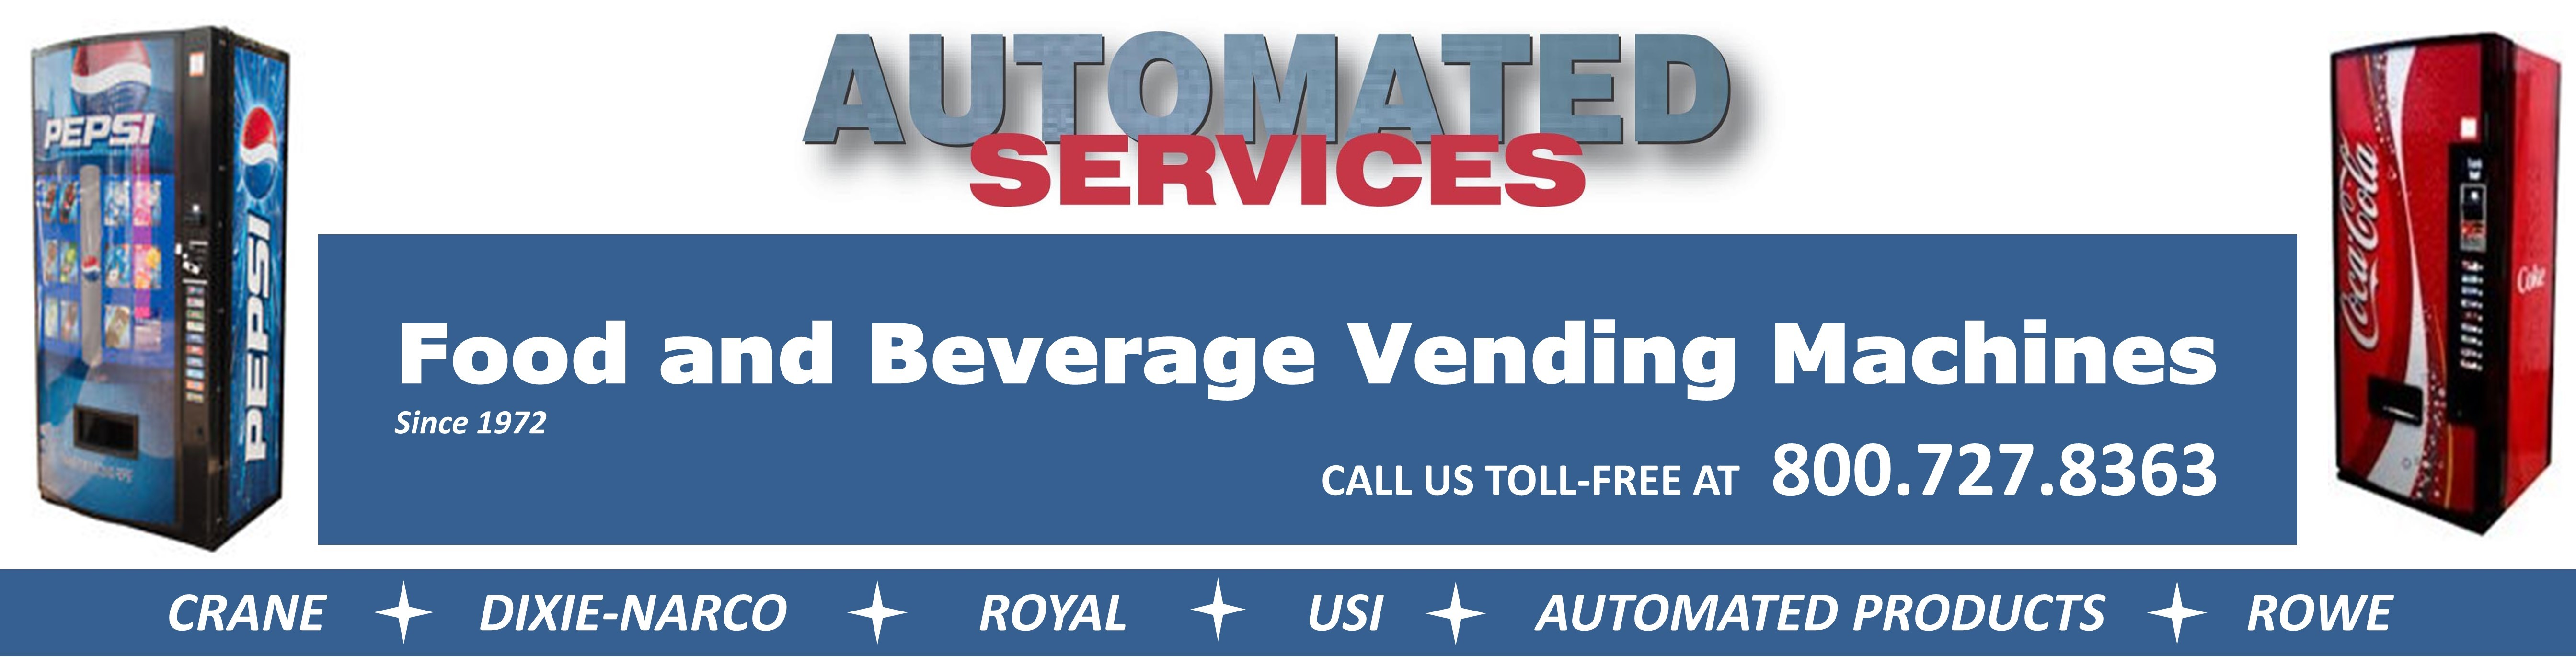 COMBO MACHINE MOTOR Vending & Tabletop Concessions CRANE NATIONAL VENDORS FULLY TESTED FULLY WORKING SNACK